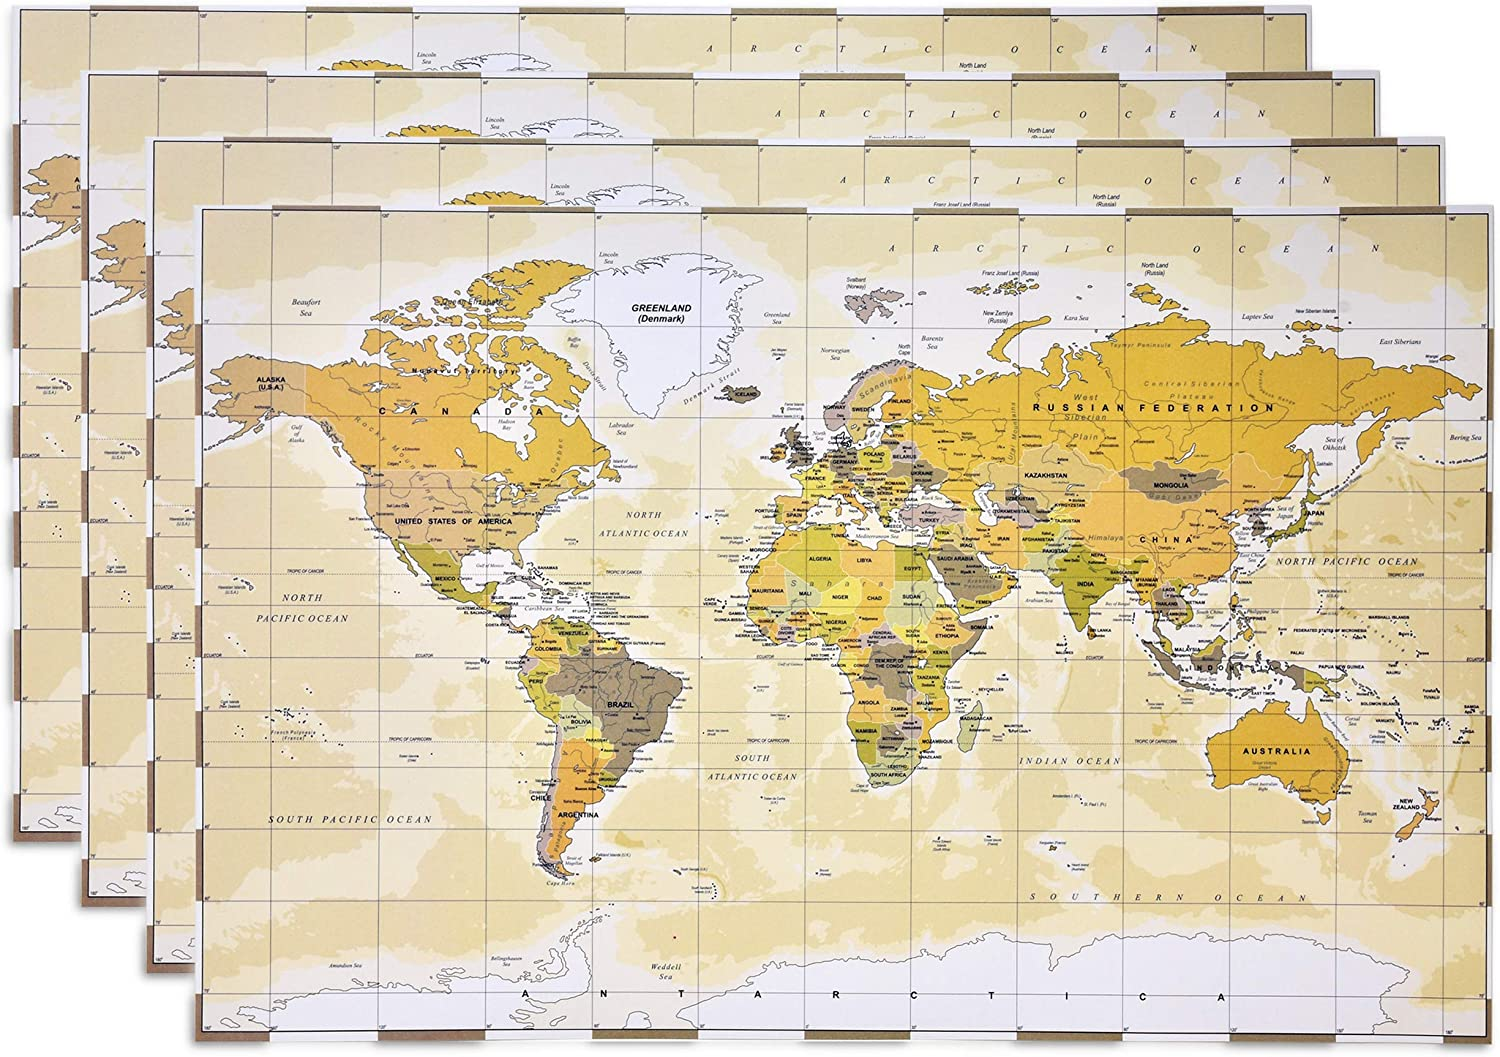 """Disposable World Map Paper Place Mats 50 Pack 11"""" x 17"""" Rectangle Shaped Globe Travel Adventure Chargers Placemats for Geography Learning Education Traveler Themed Crafts Dinner Party Table Decor"""